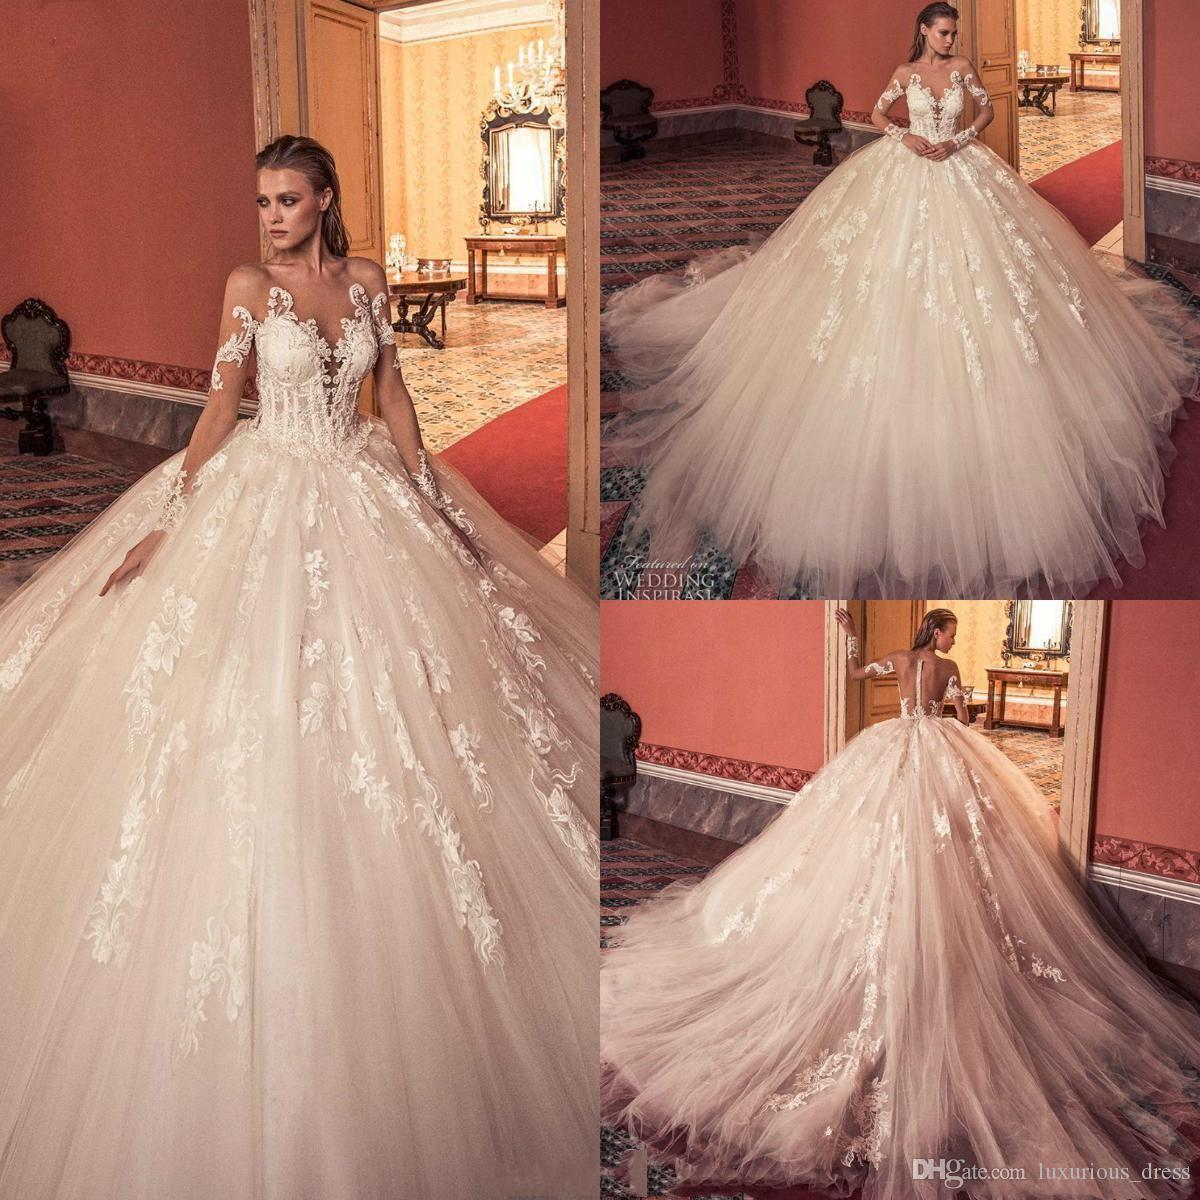 99d4f57a63f9 Discount 2019 Romantic Arabic A Line Wedding Dresses Off Shoulder Lace  Appliques Tulle Sheer Neck Long Sleeves Chapel Train Formal Bridal Gowns  2K19 Plus .